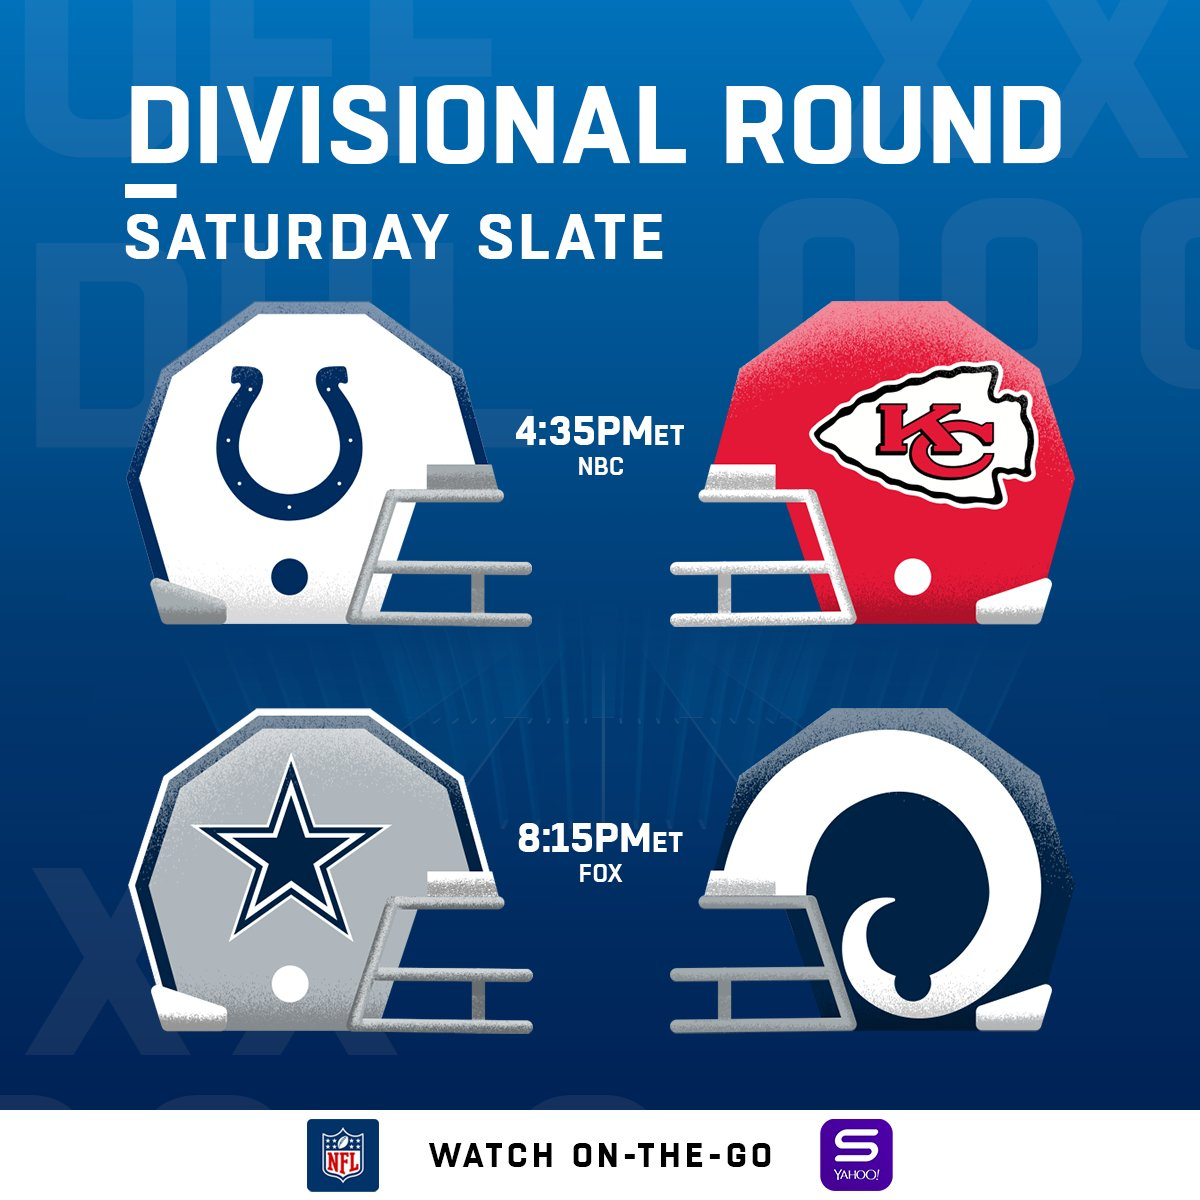 The Divisional Round is HERE! #NFLPlayoffs https://t.co/mulKHKdlv5